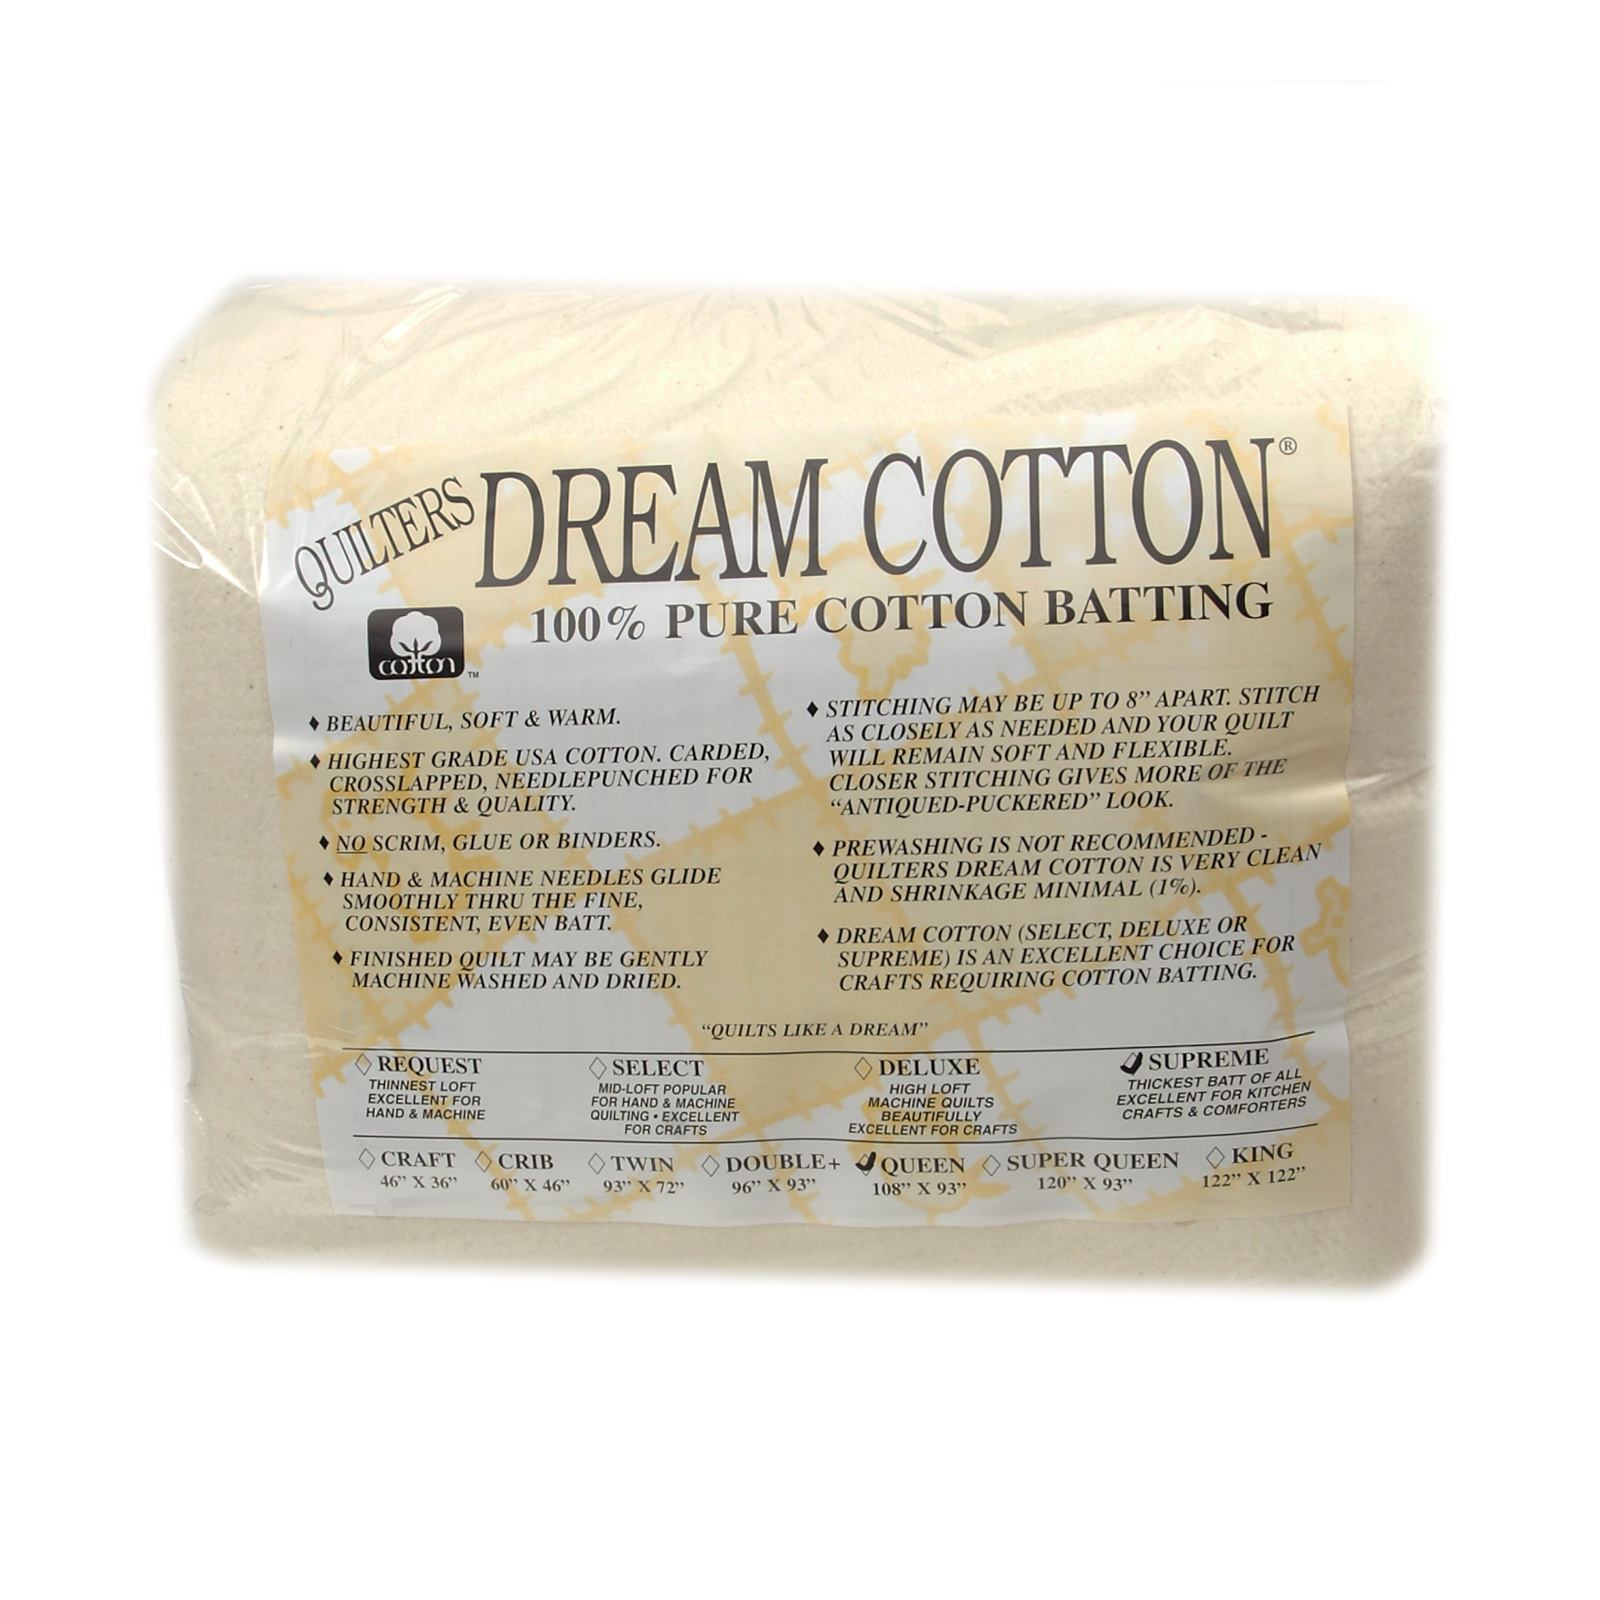 Quilter's Dream Natural Cotton Supreme Batting (108'' x 93'') Queen by Quilter's Dream in USA